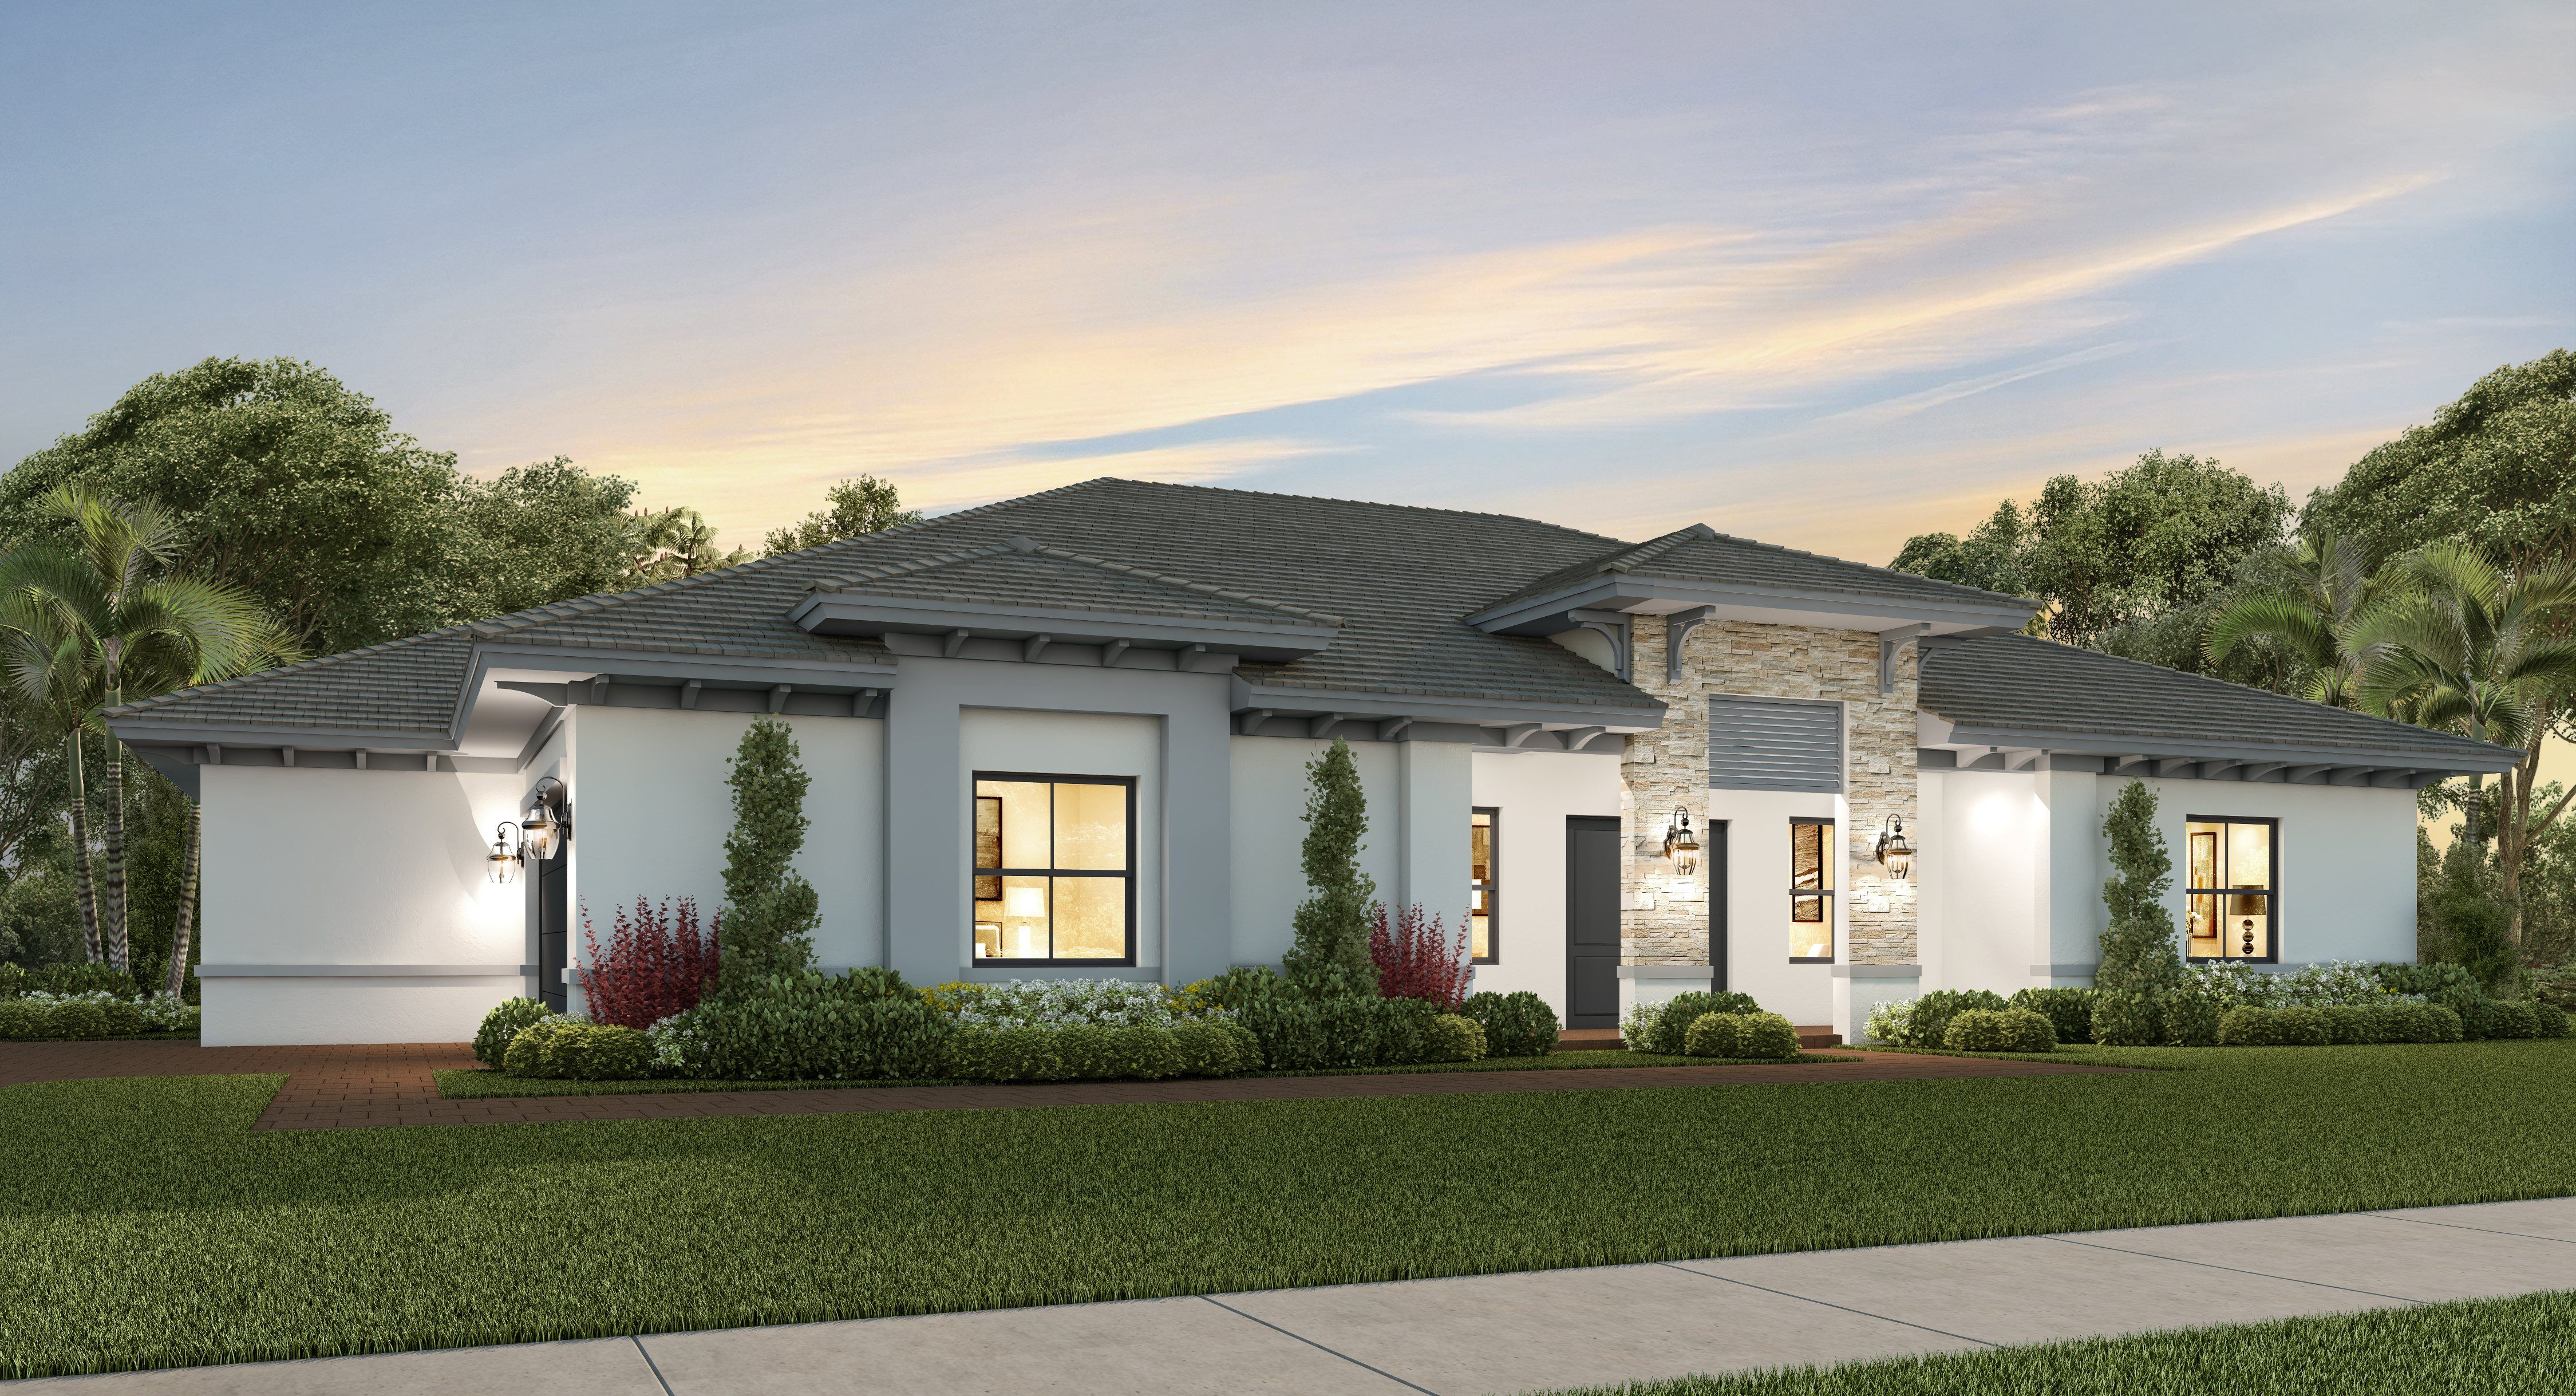 Awe Inspiring 19060 Sw 136 Ct Miami Fl 33177 New Home In Galiano Estates Home Interior And Landscaping Elinuenasavecom